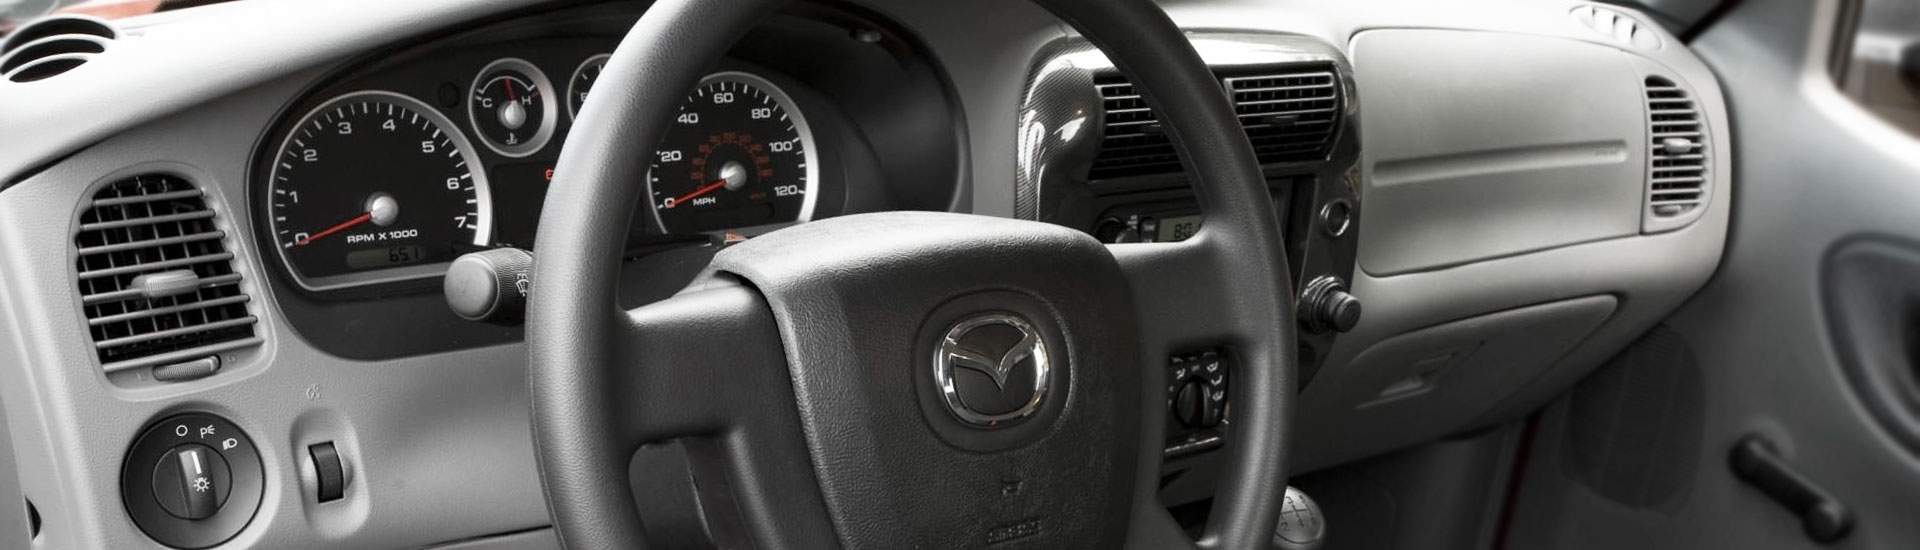 Mazda Truck Custom Dash Kits